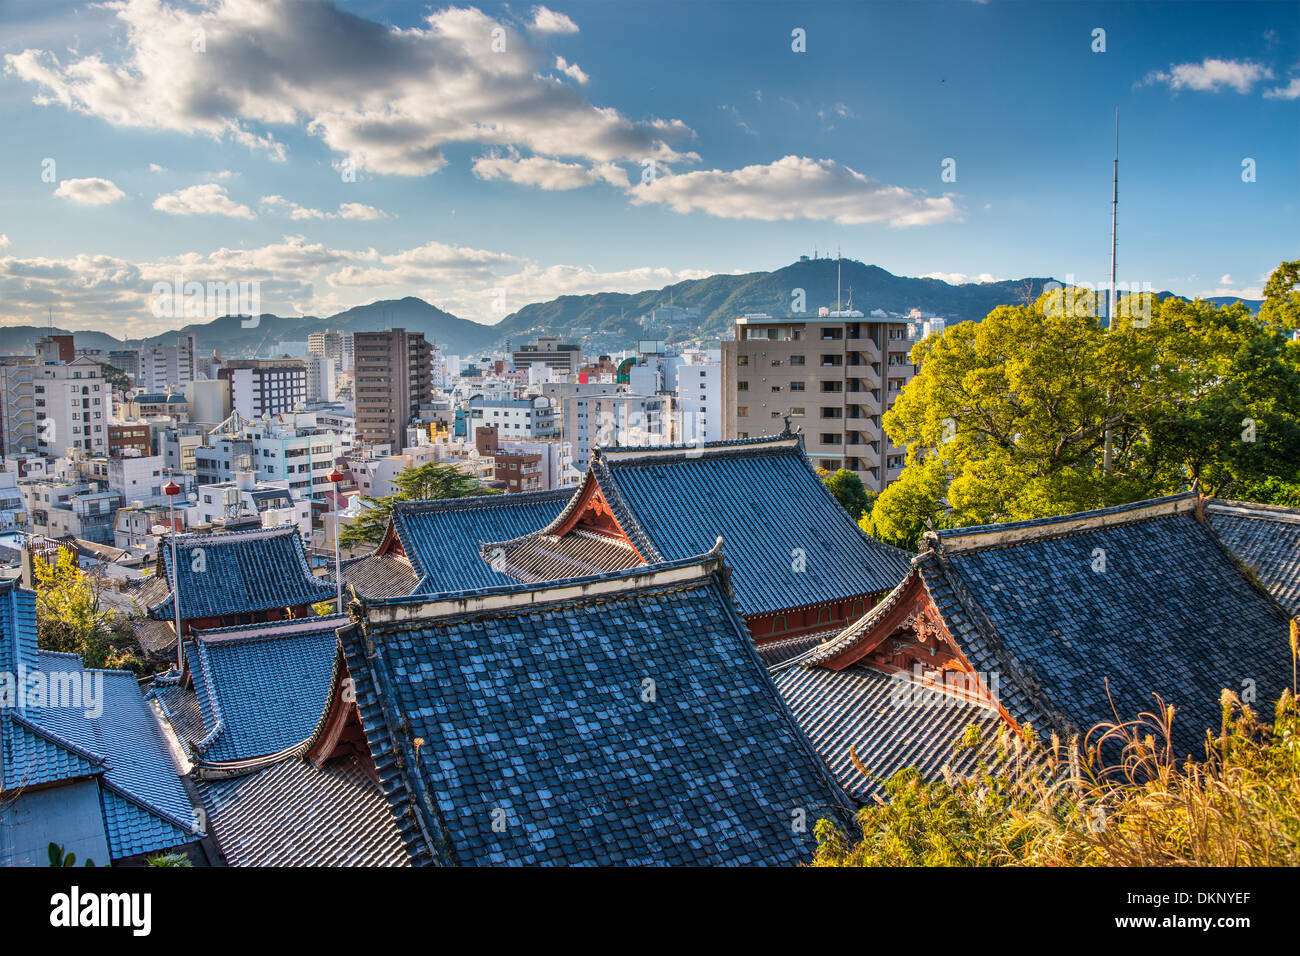 Temple rooftops in Nagasaki, Japan. - Stock Image